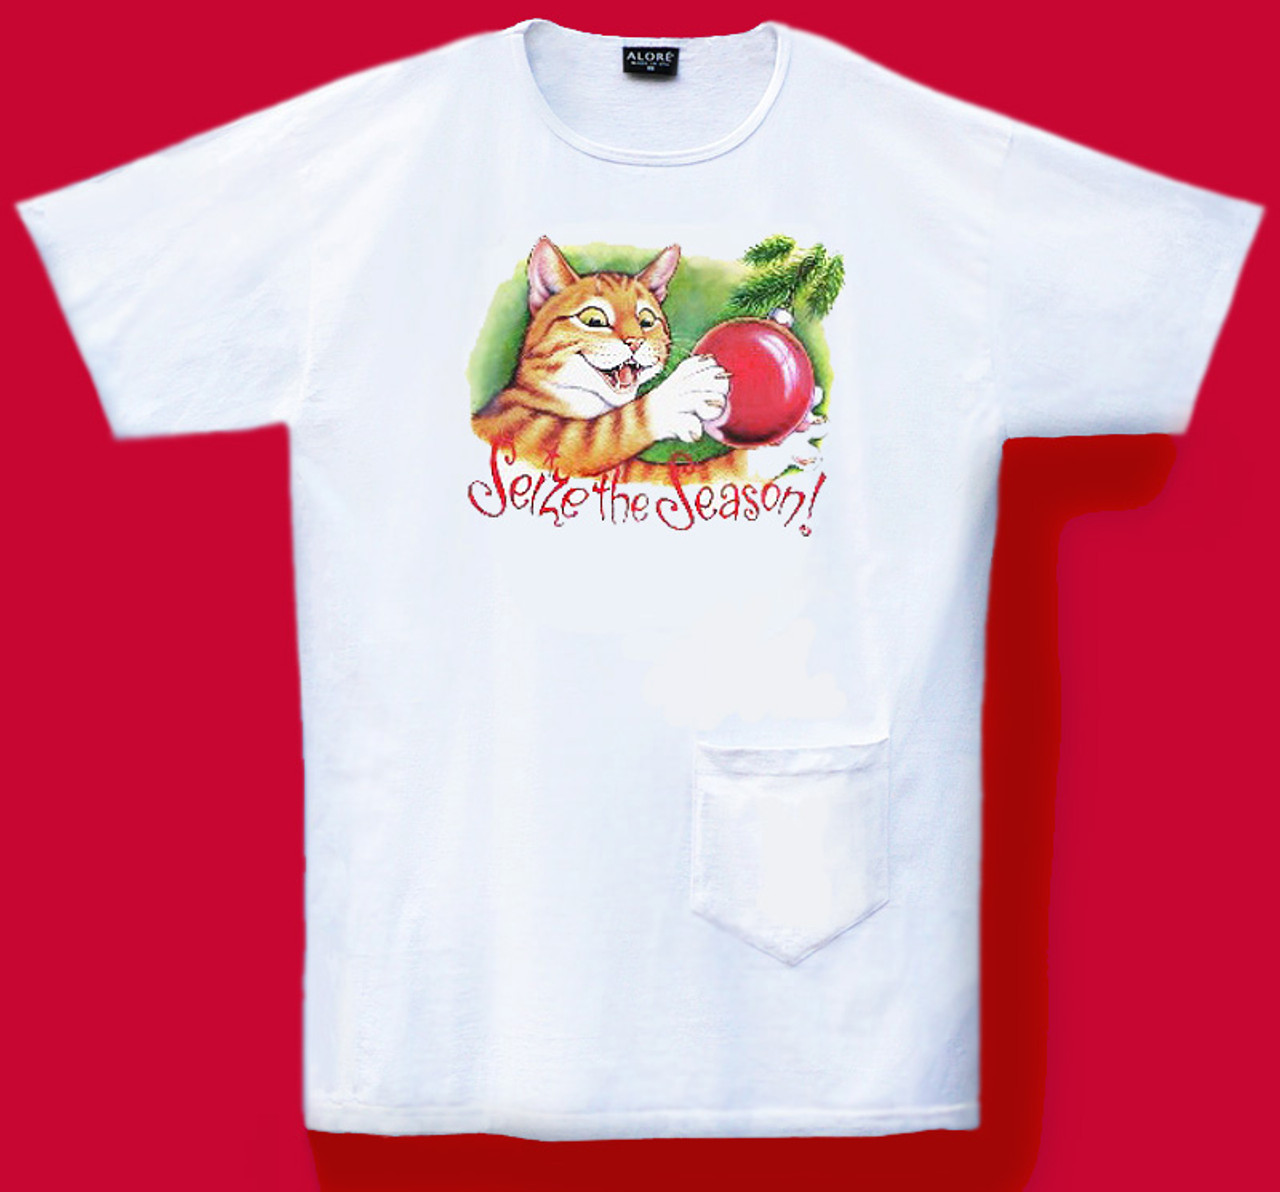 c67da2834b What a naughty kitty in that Christmas tree! Great one size fits most  cotton nightshirt